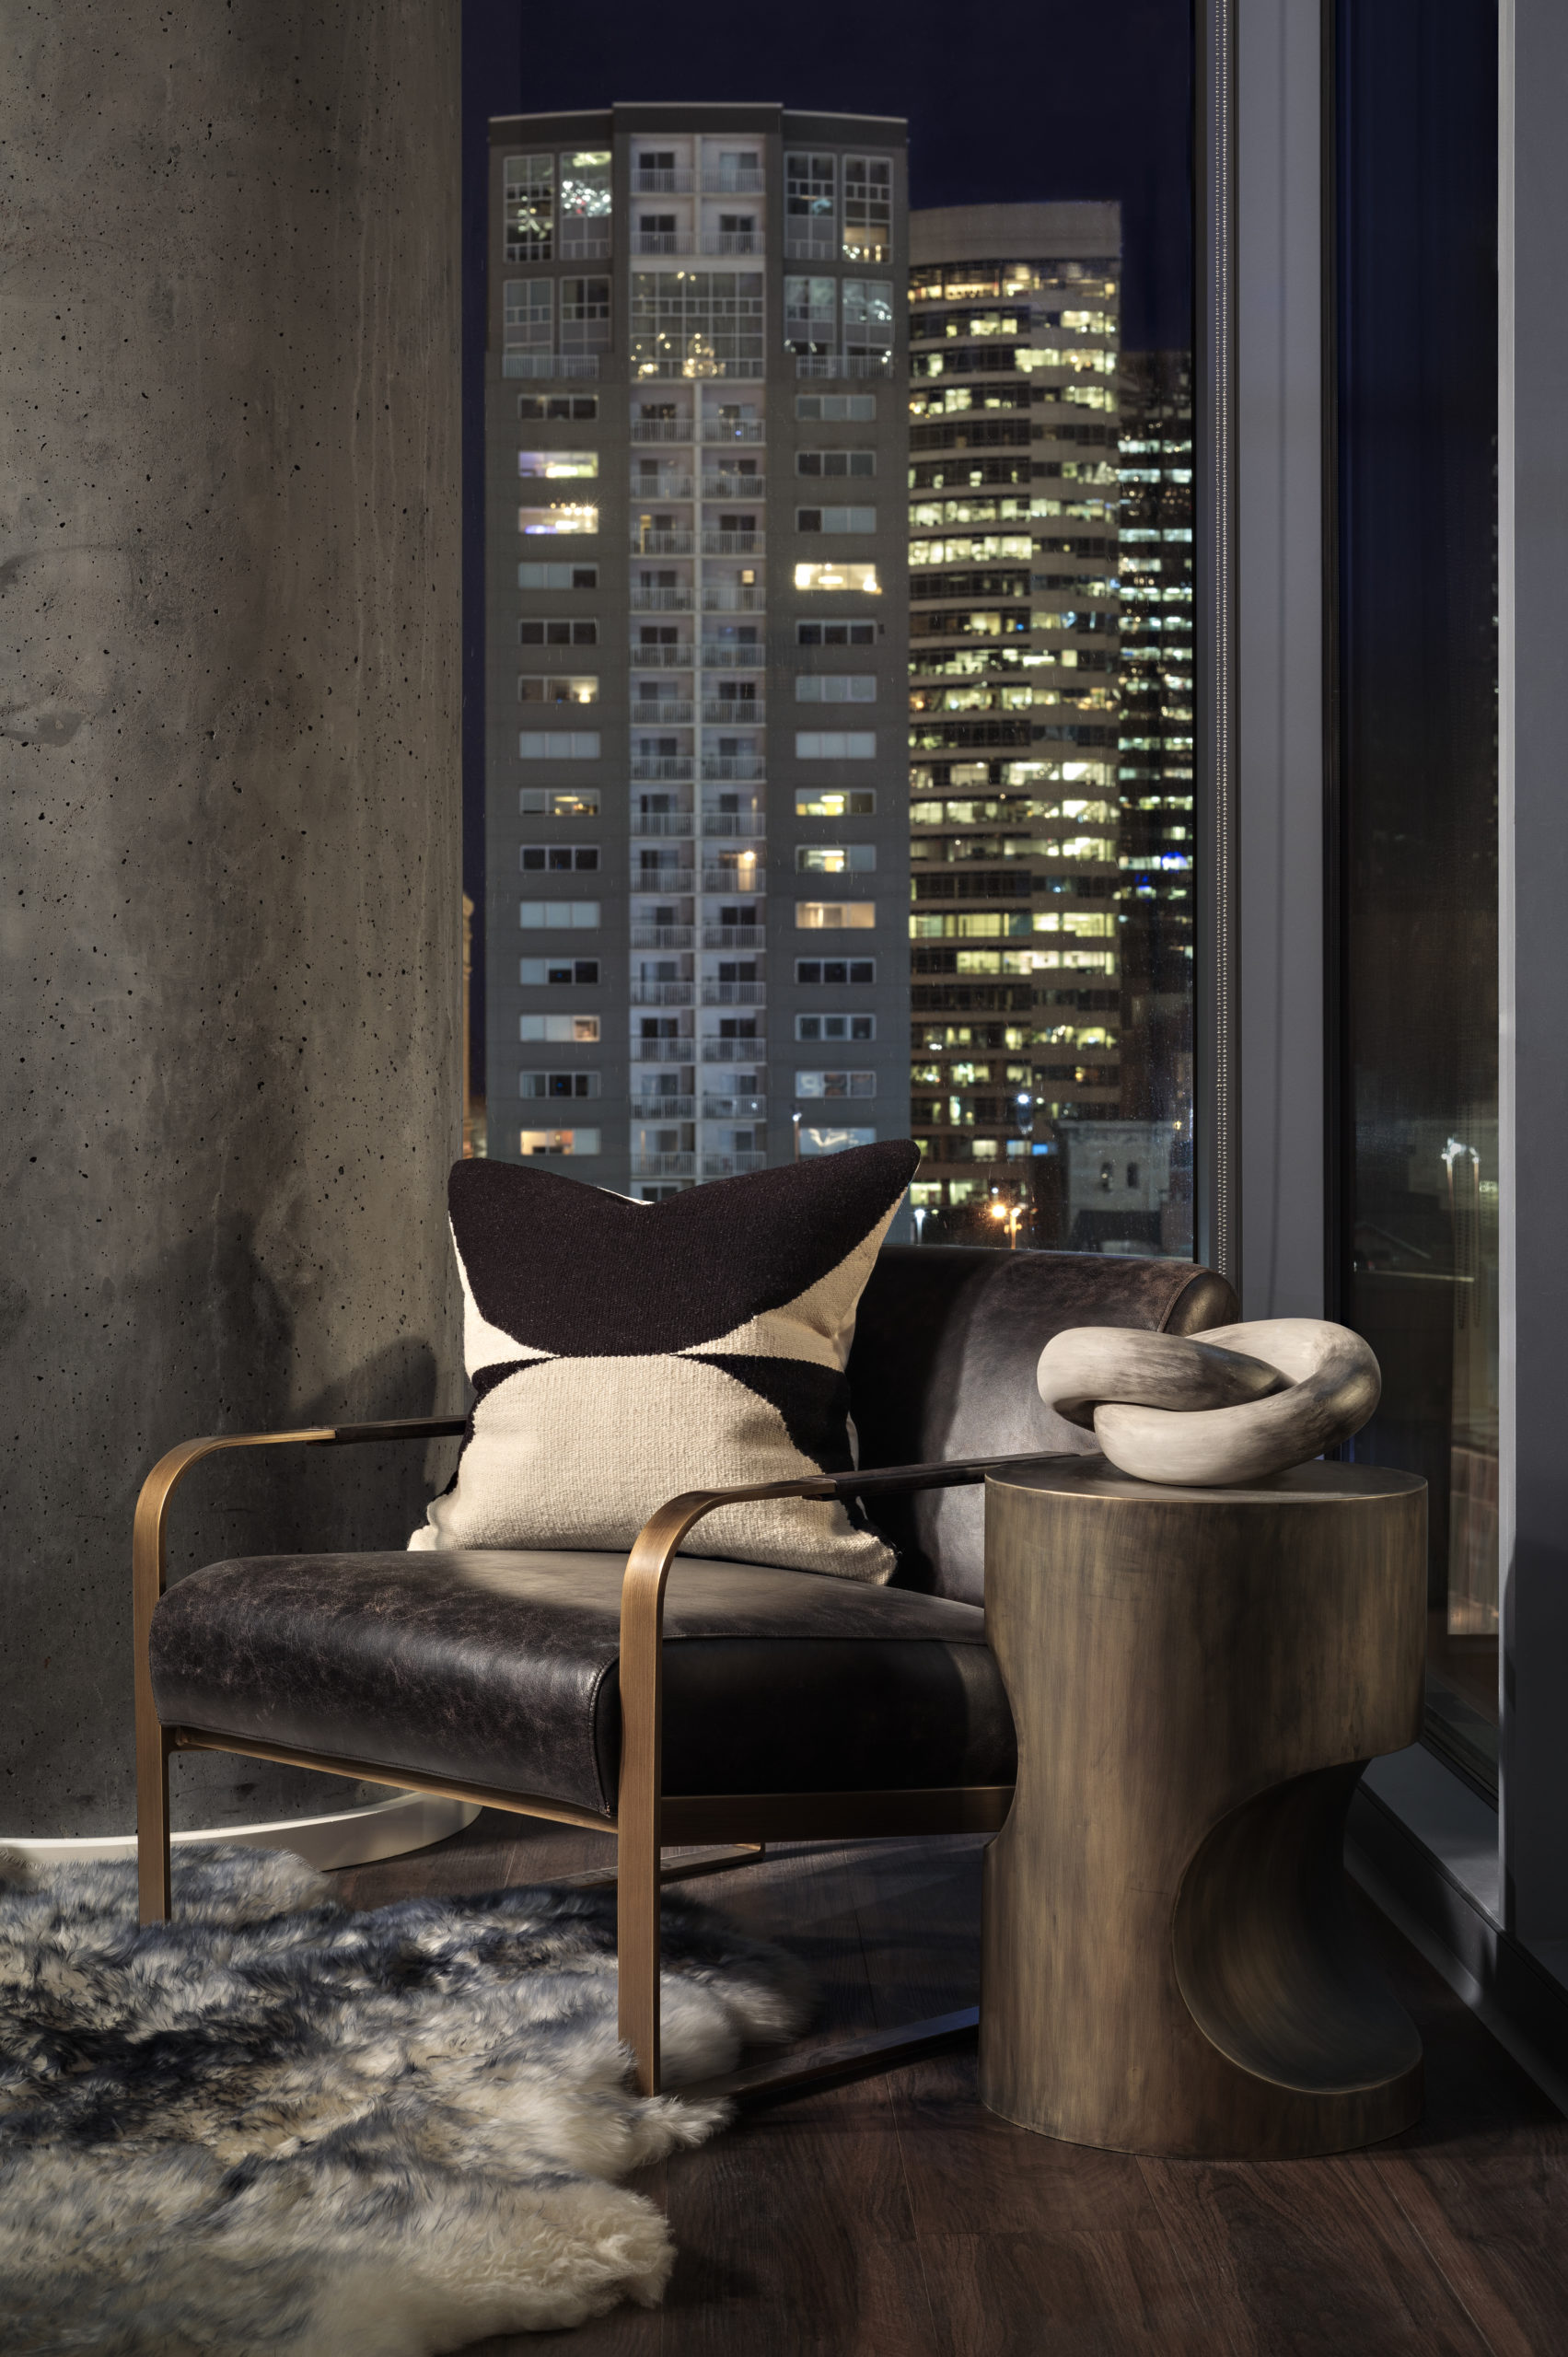 luxury nashville apartment night view with leather chair